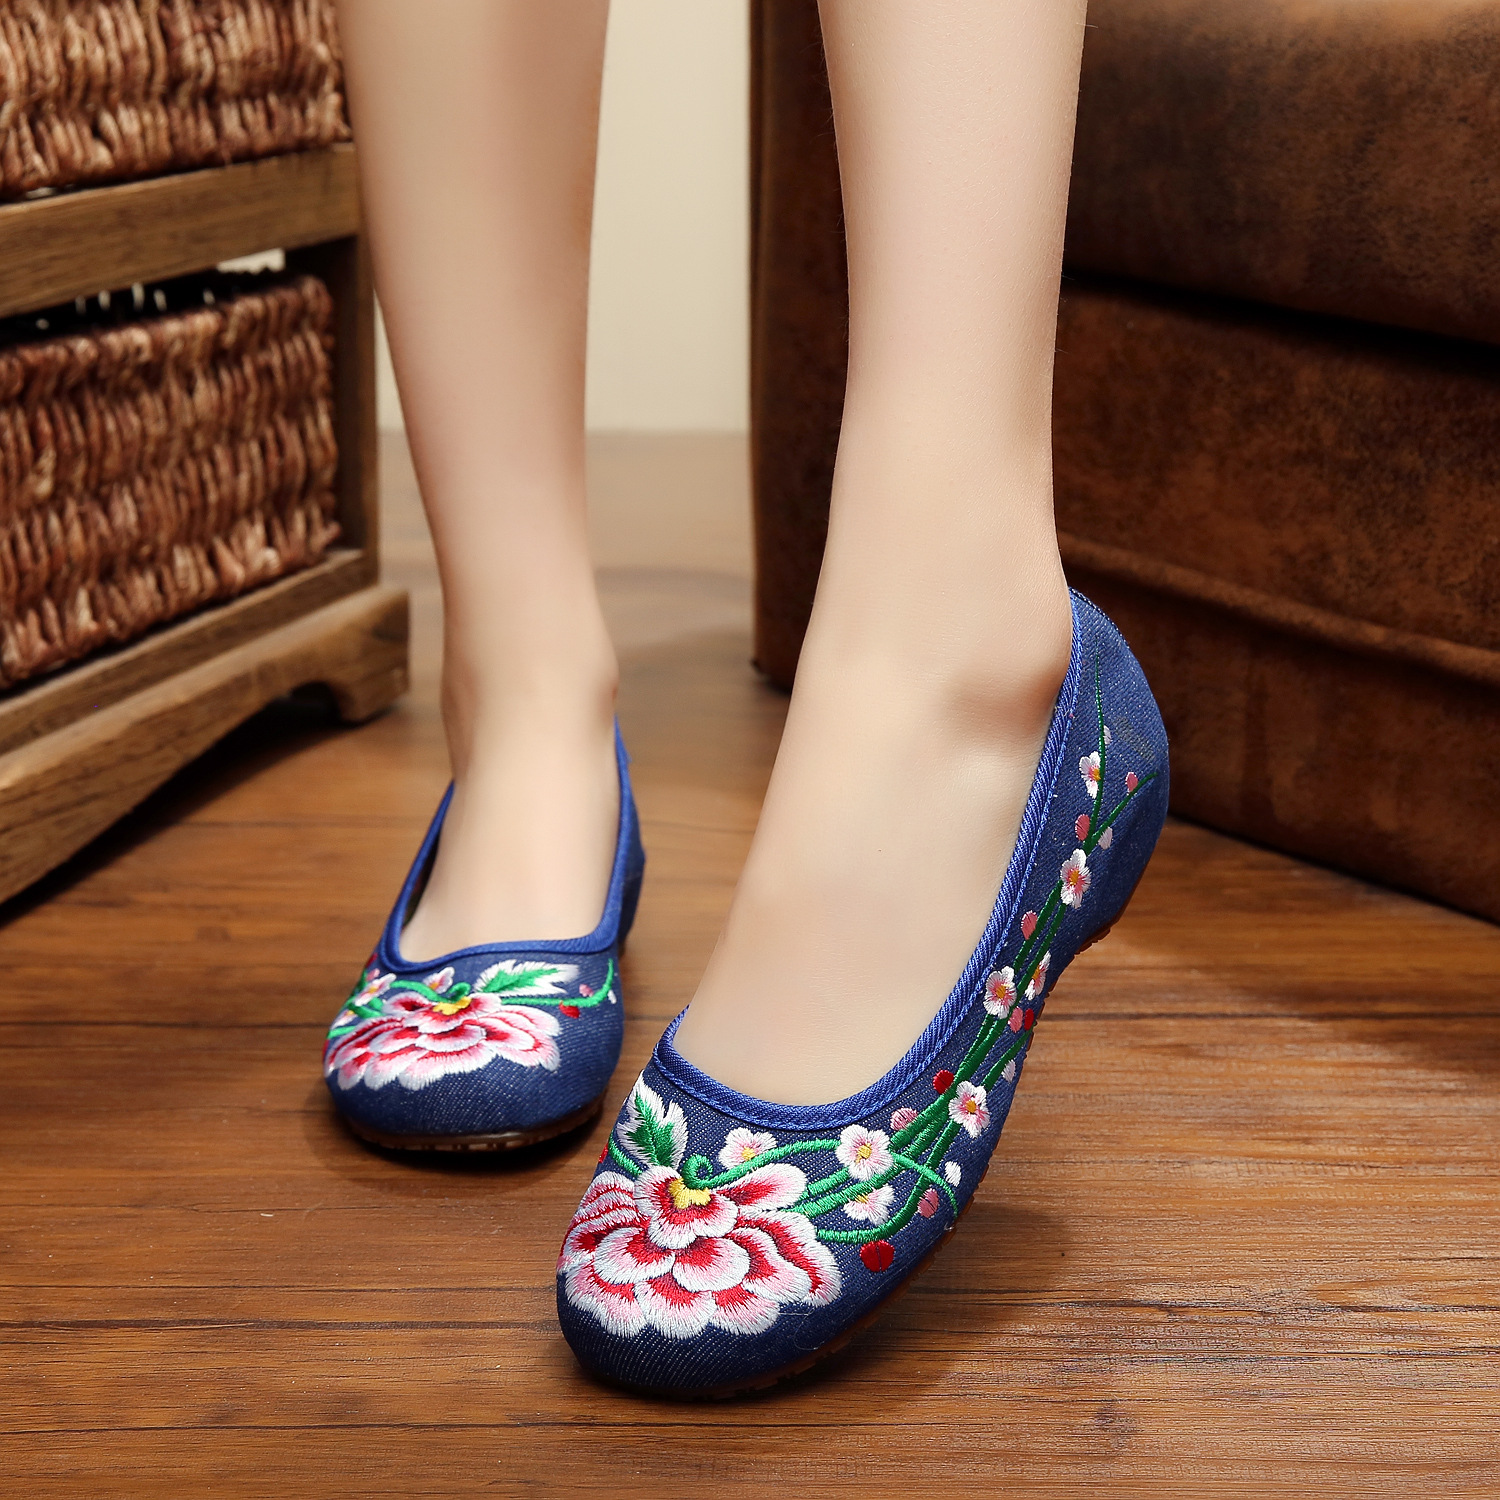 Hot sale retro style delicate flower embroidery fashion women flats shoes leisure canvas shoes for ladies 3 color for choose<br><br>Aliexpress